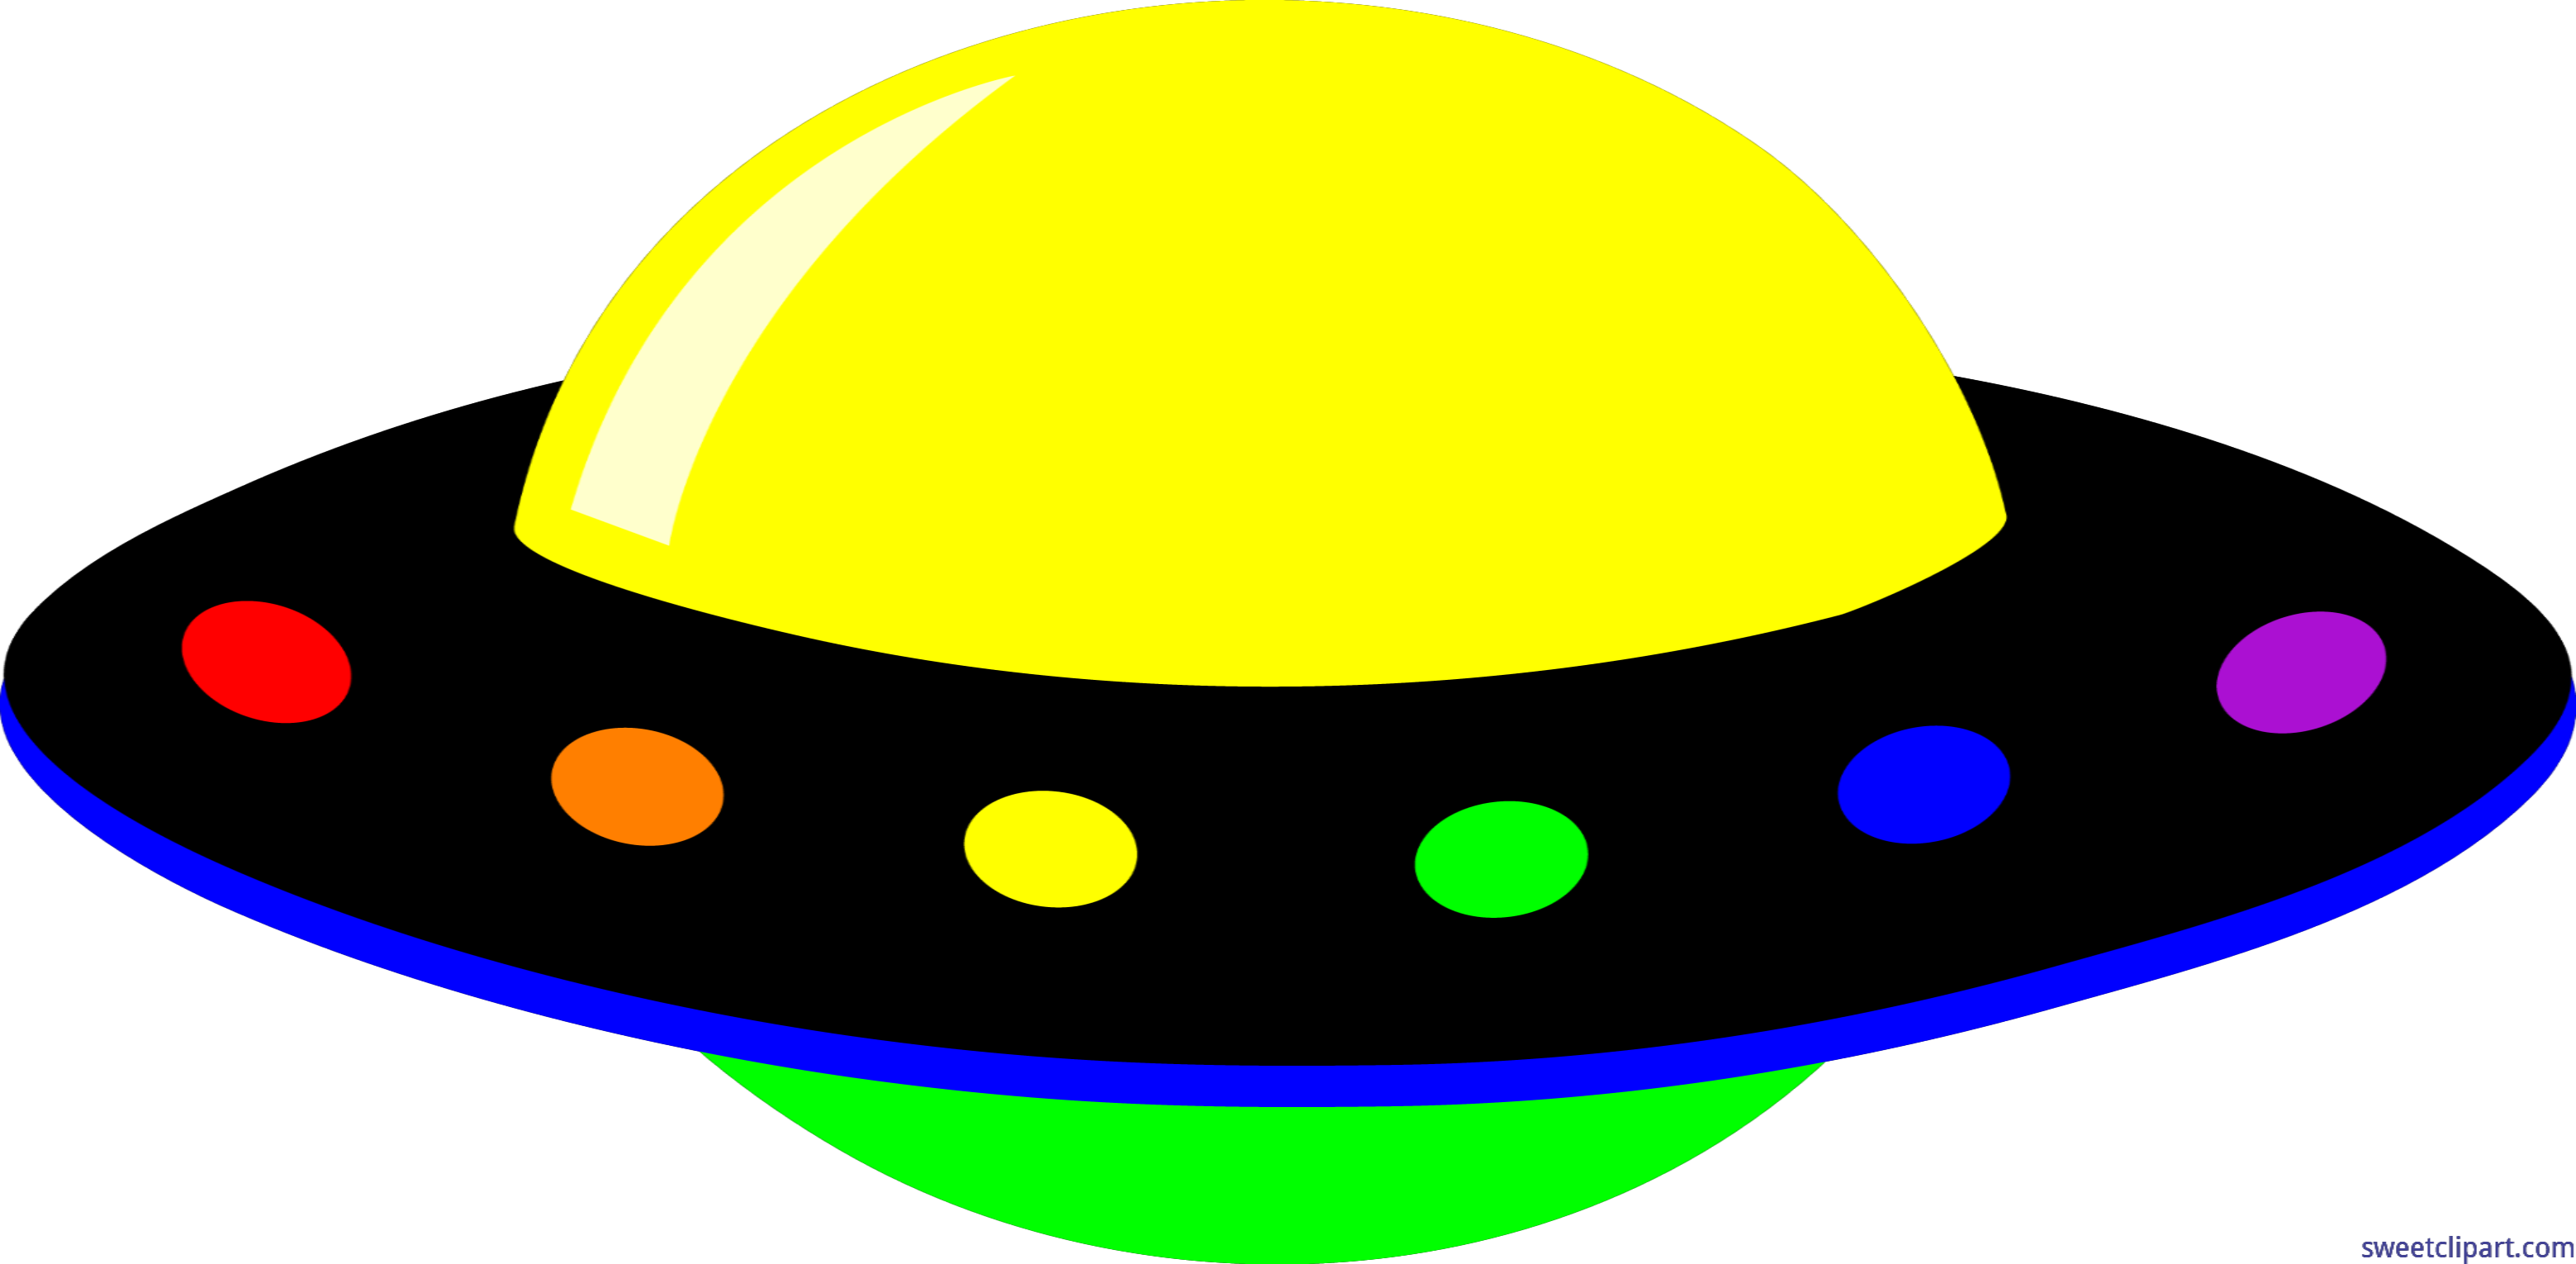 ufo neon rainbow clip art sweet clip art rh m sweetclipart com ufo clipart black and white ufo clipart black and white